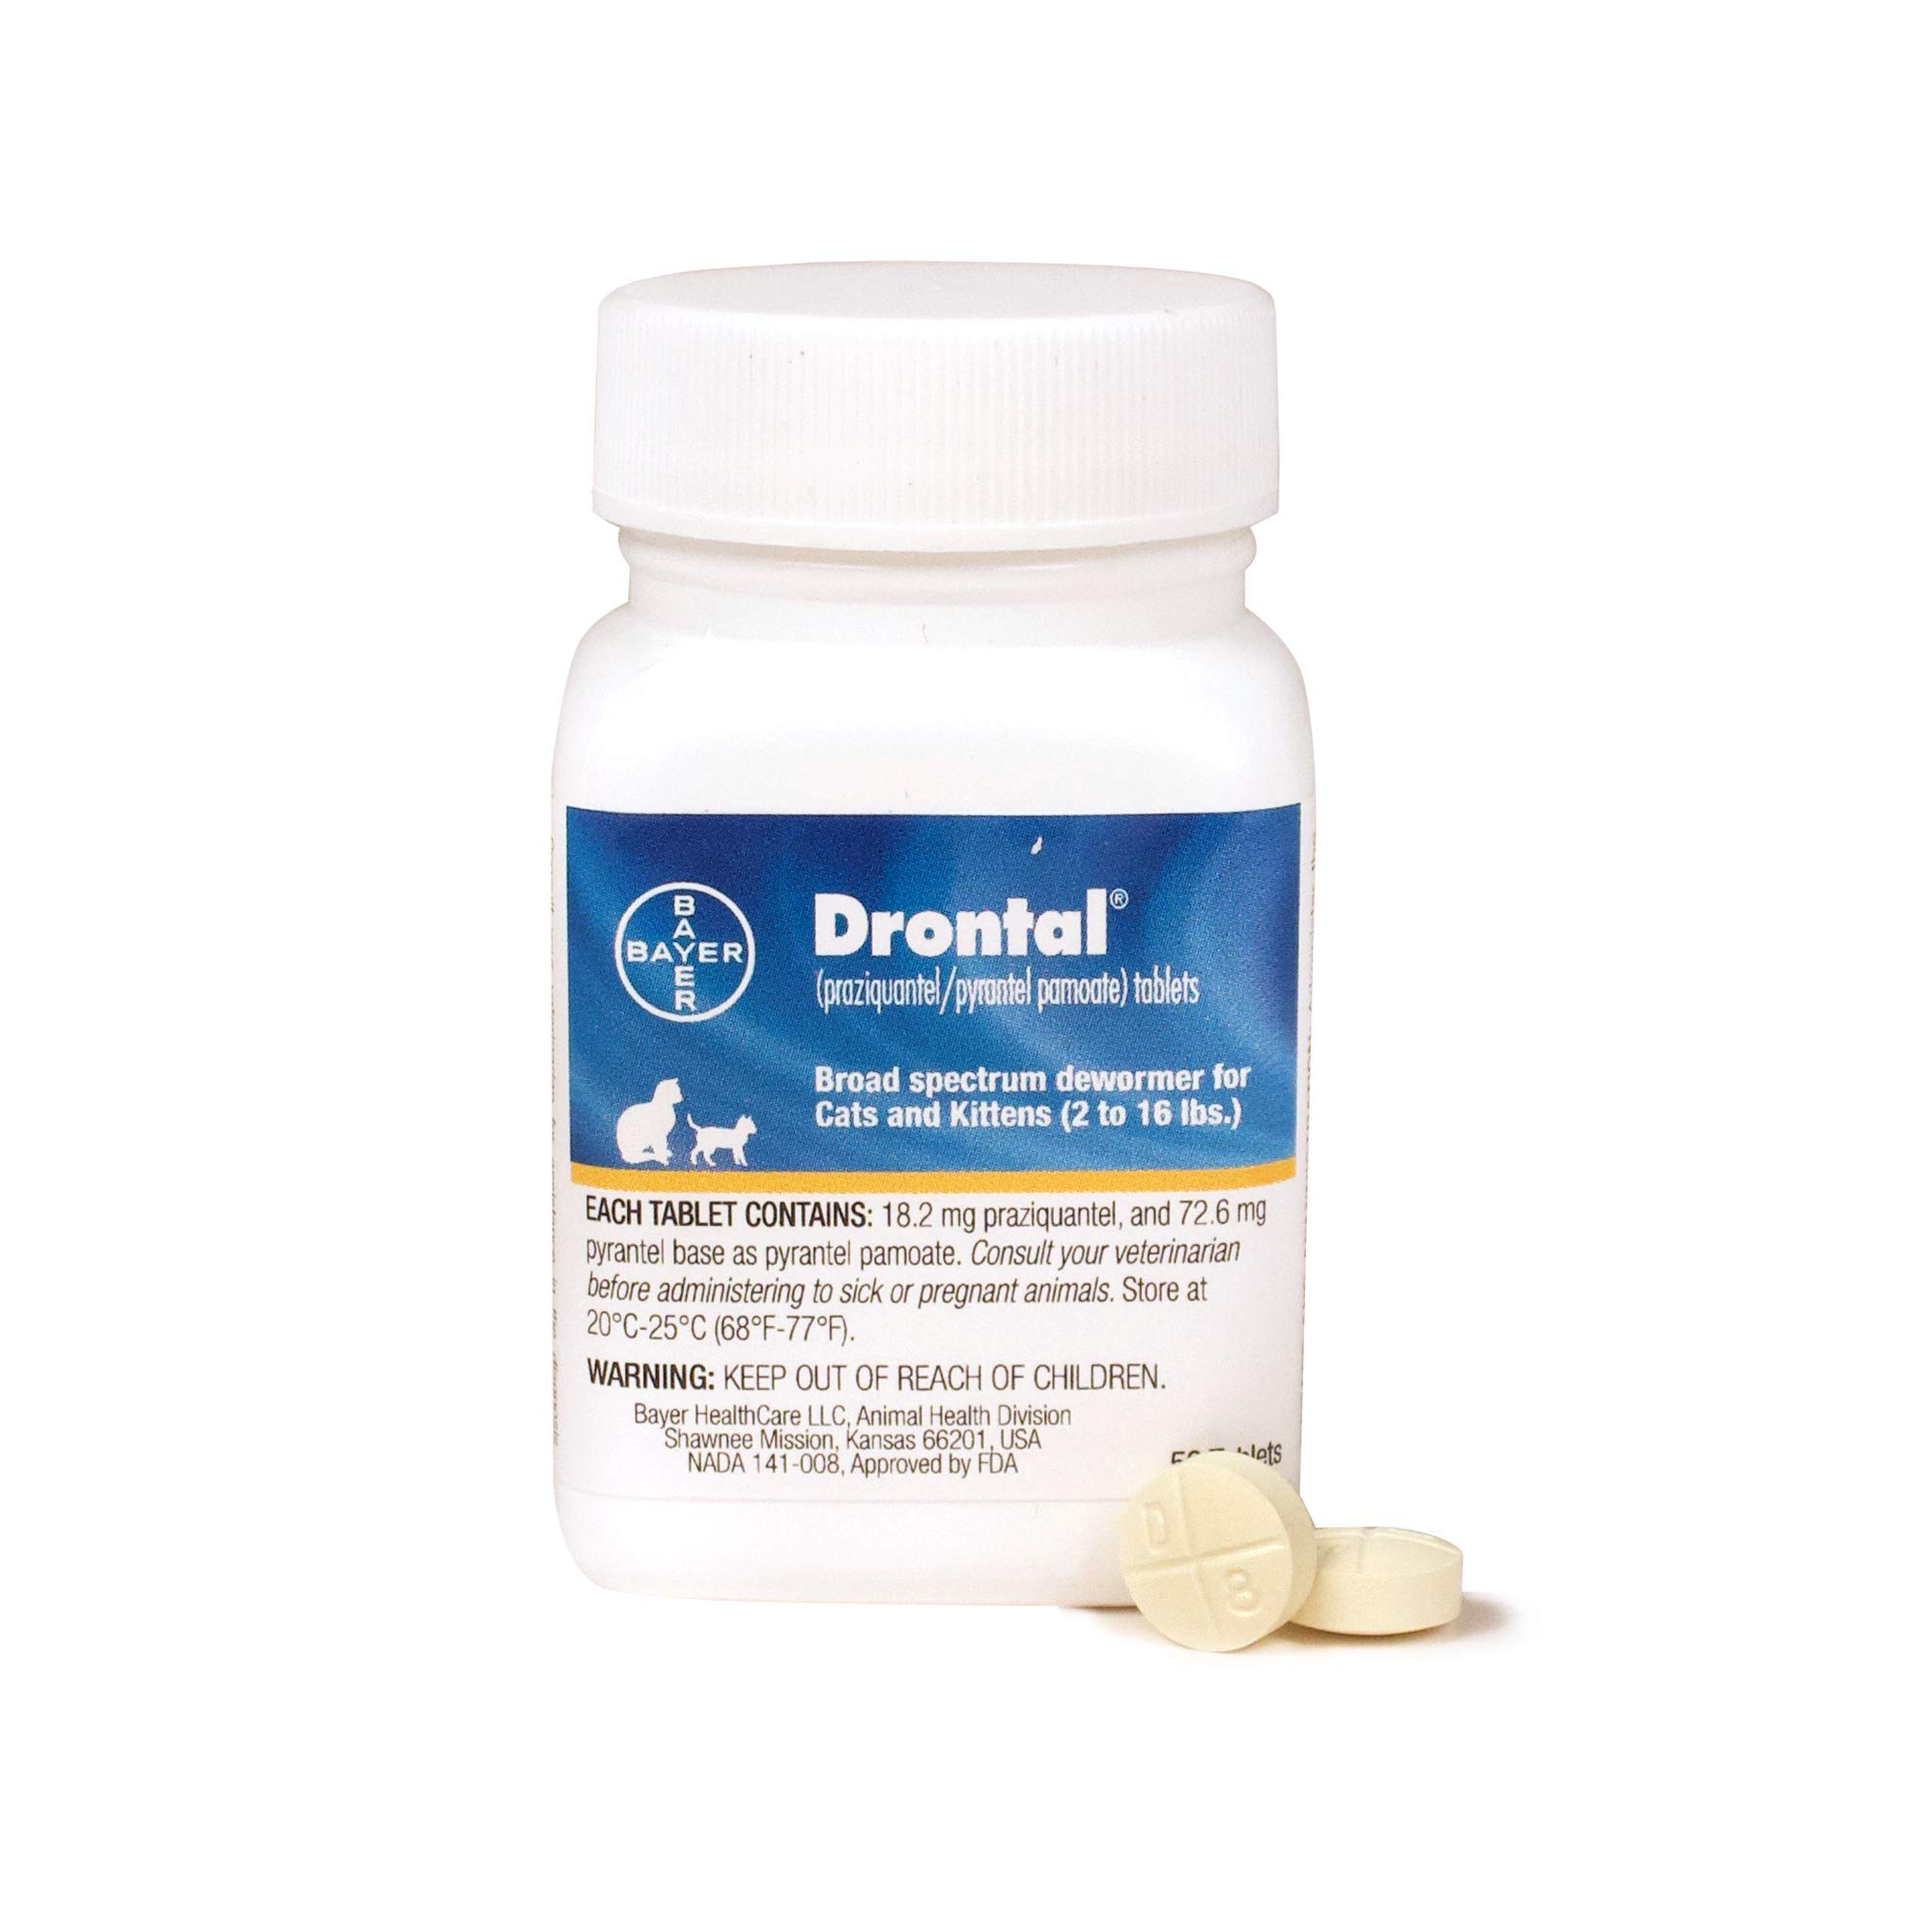 Bayer Drontal Broad Spectrum Dewormer, 50 Tablets by Bayer Animal Health